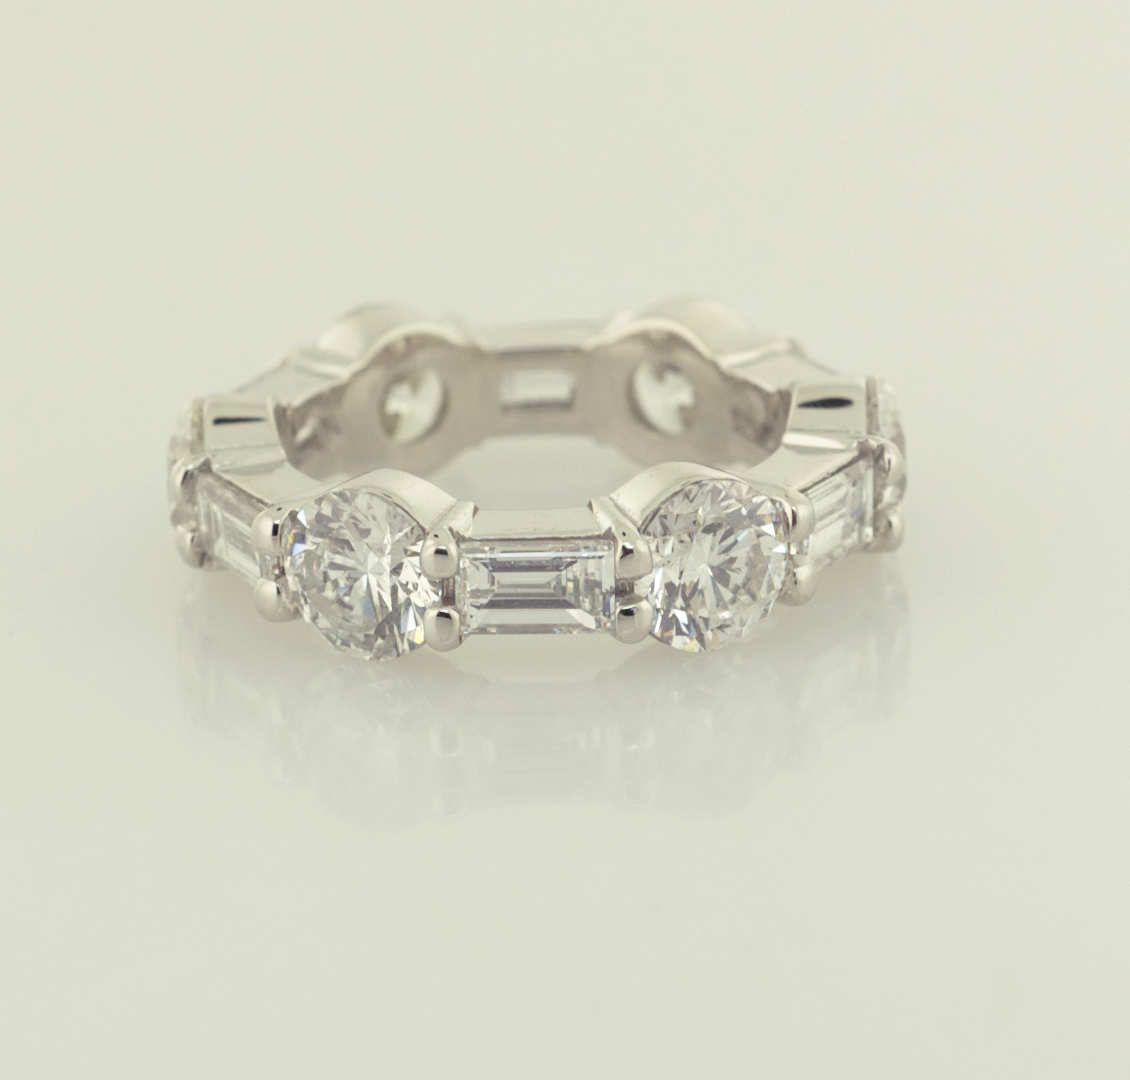 baguette bridal eternity cp prong channel and bands encircle love collections set signature band diamond platinum